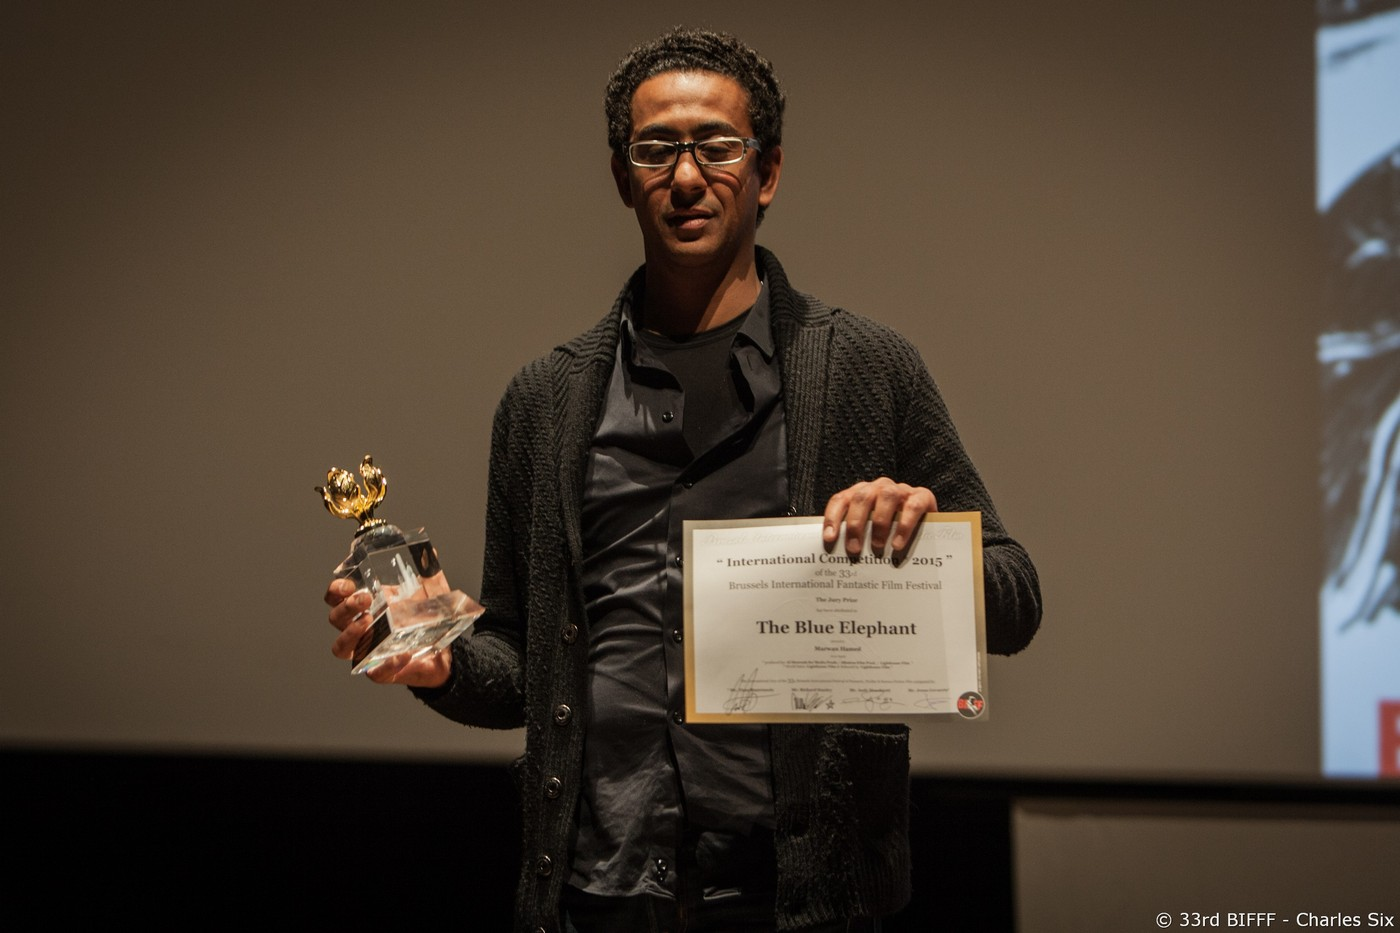 Marwan Hamed Director - The Blue Elephant - Special Prize of the Jury and Special prize offered by the Hong Kong Economic and Trade Office for their 50 years of presence in Brussels